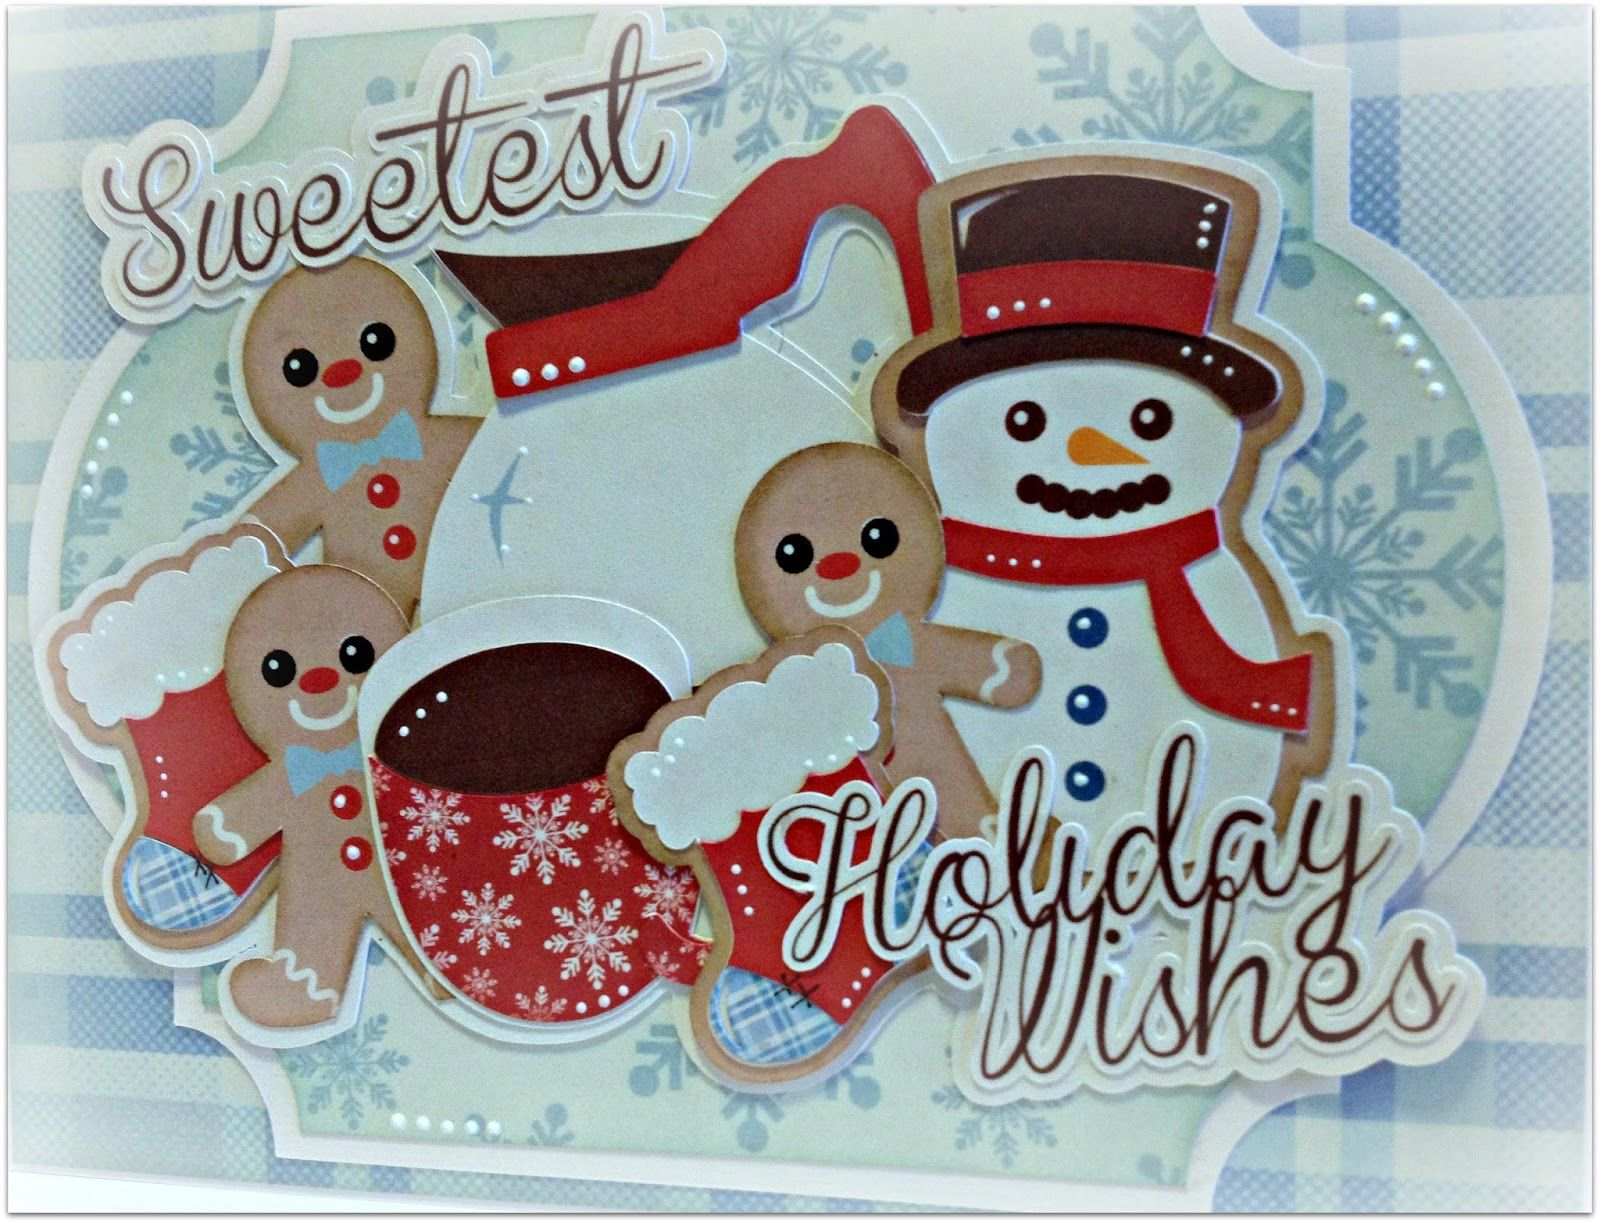 Hi fellow crafters.. It's Nanné here today to share a cute little Xmas card I created using some of the fun cutting files from the Prett...